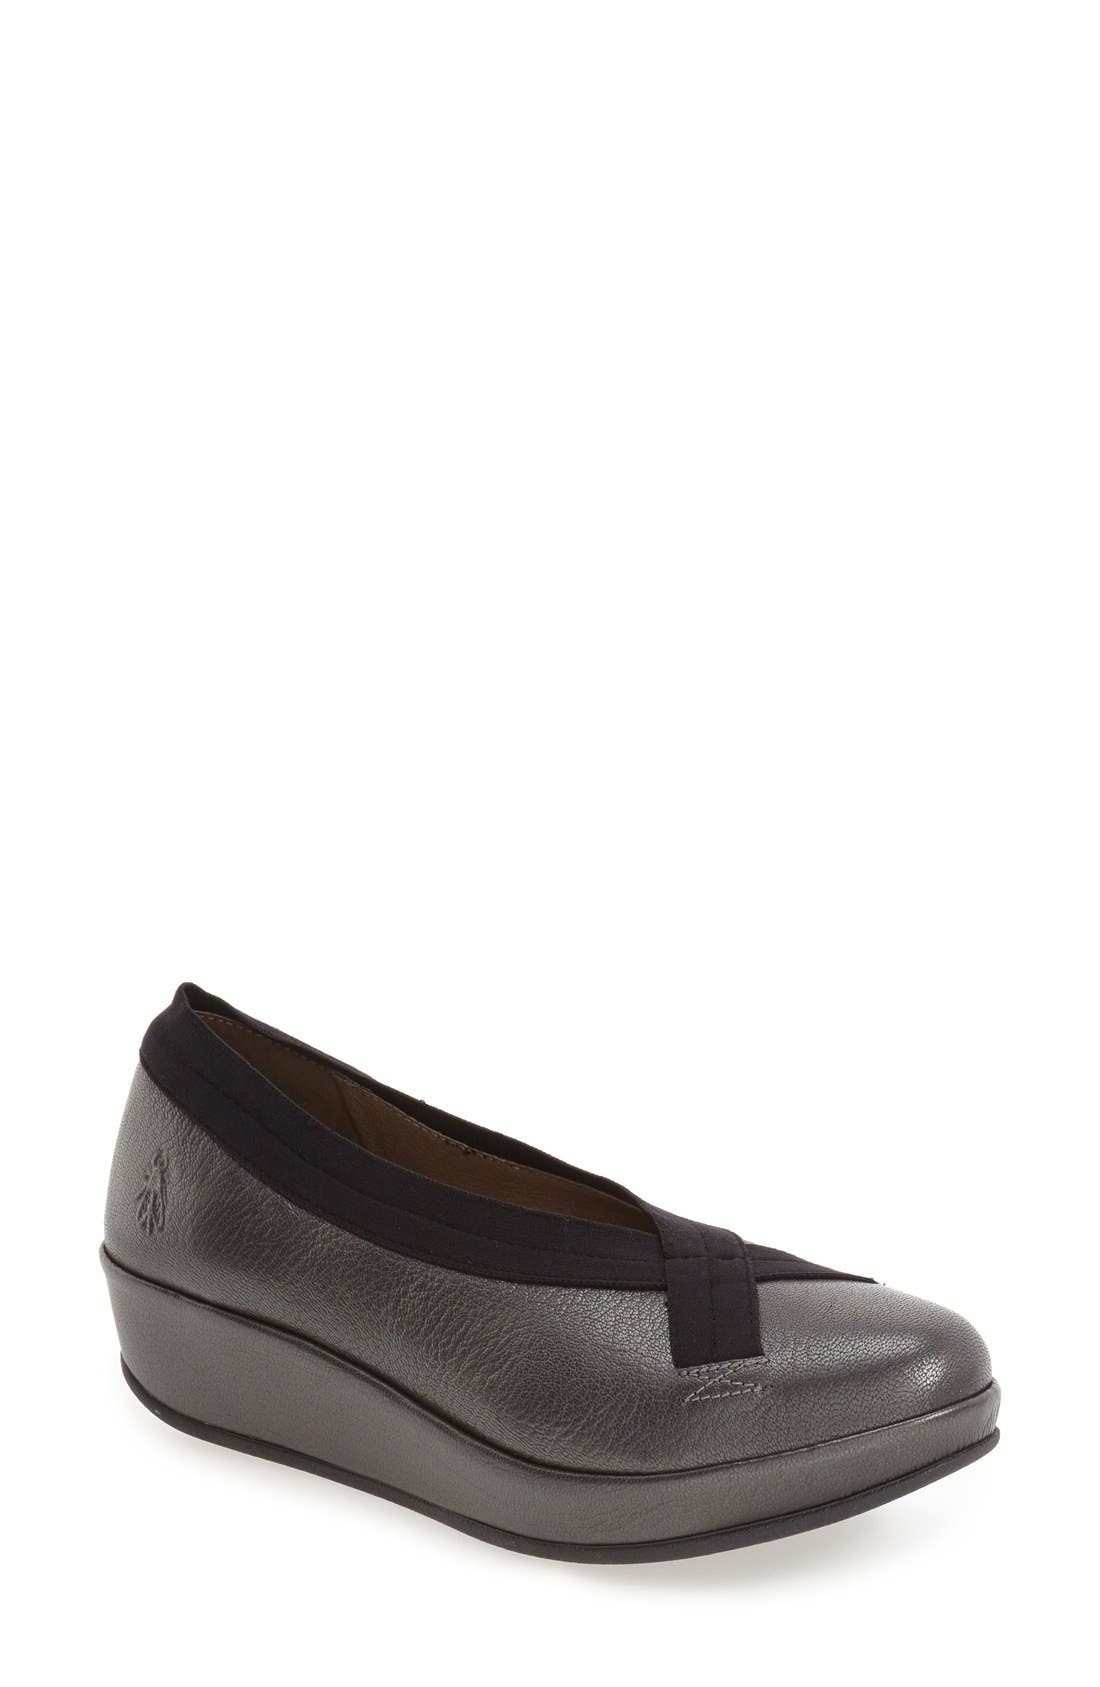 Fly London 'Bobi' Wedge Flat (Women)